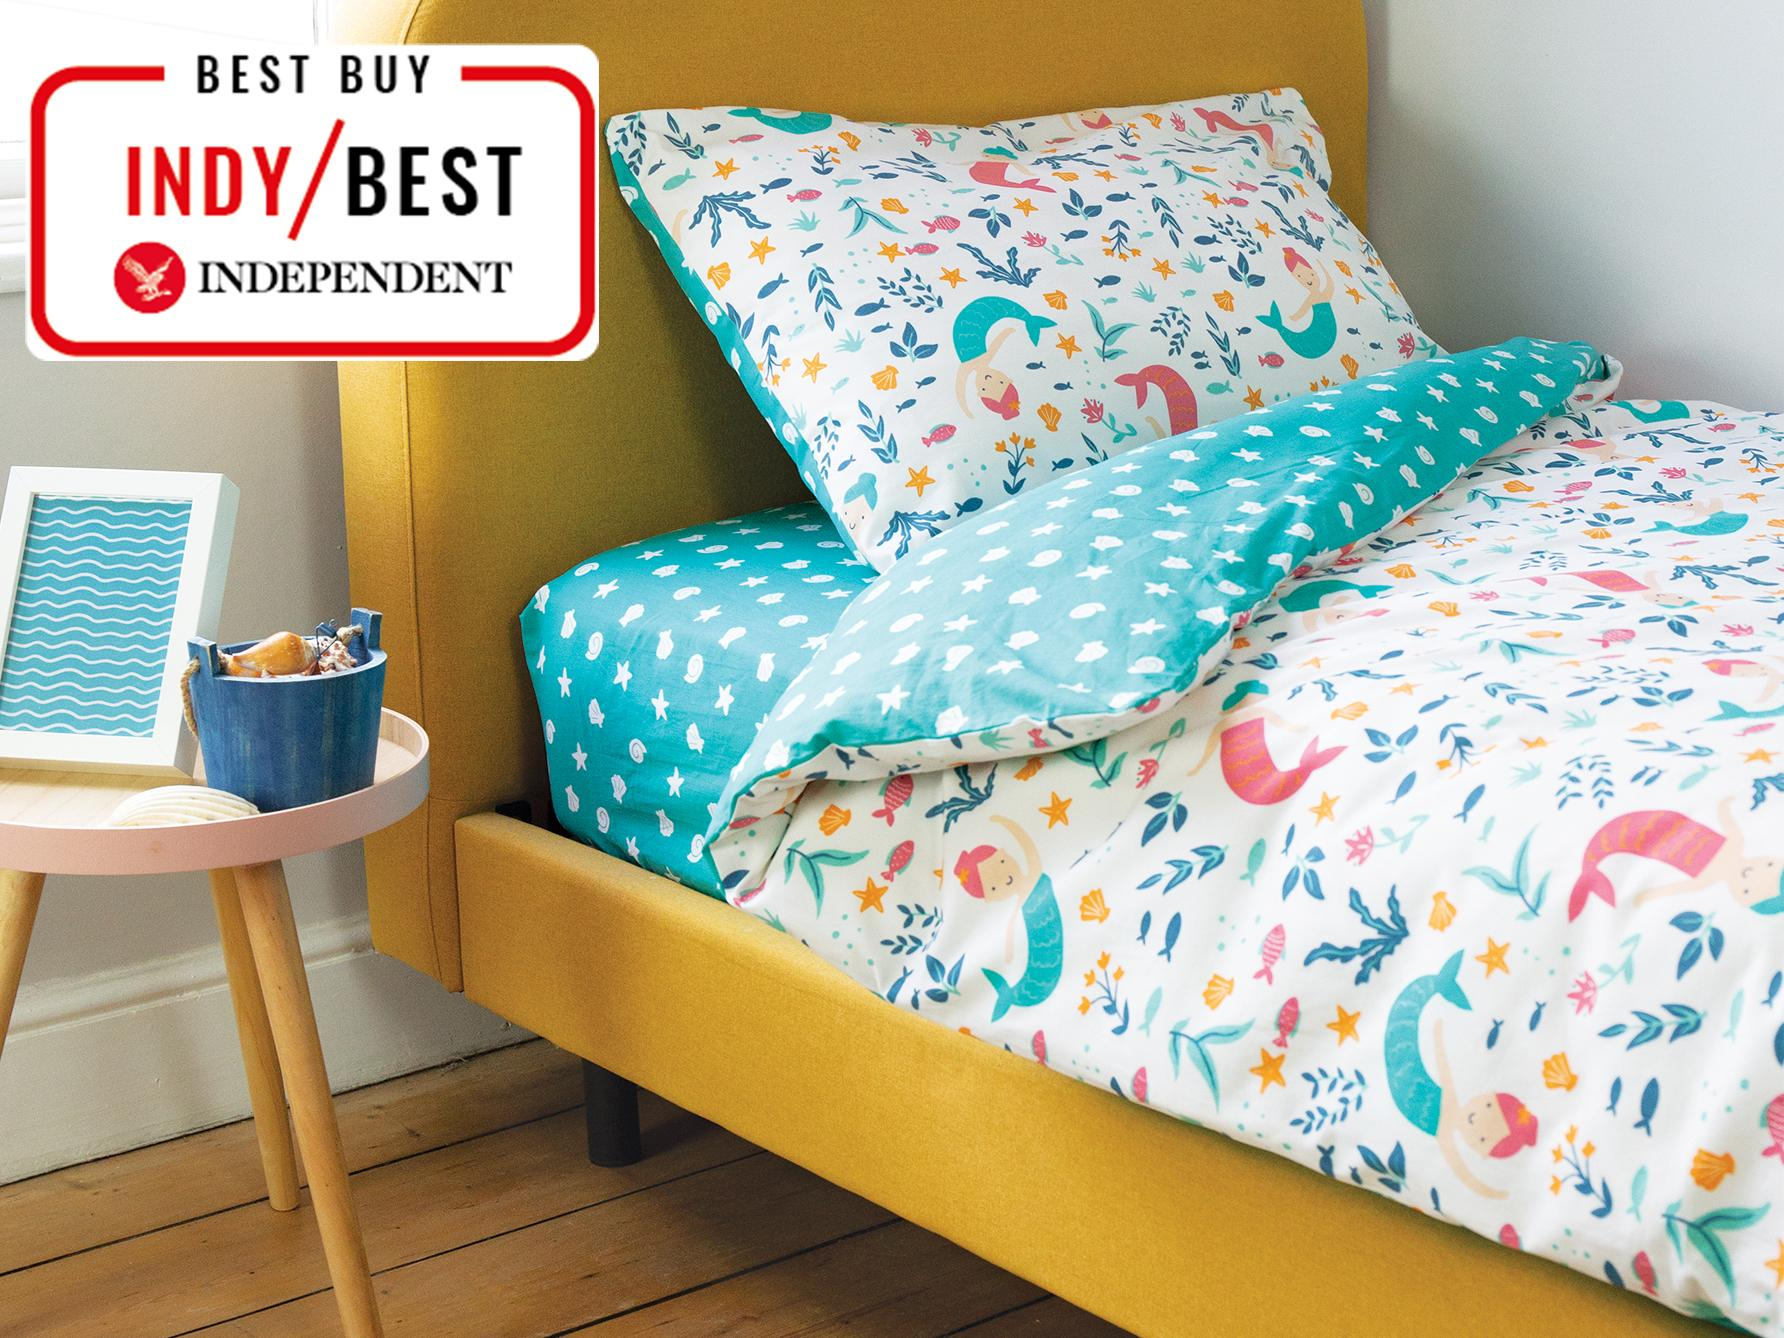 Best bedding sets that are cosy, wash well and have fun prints